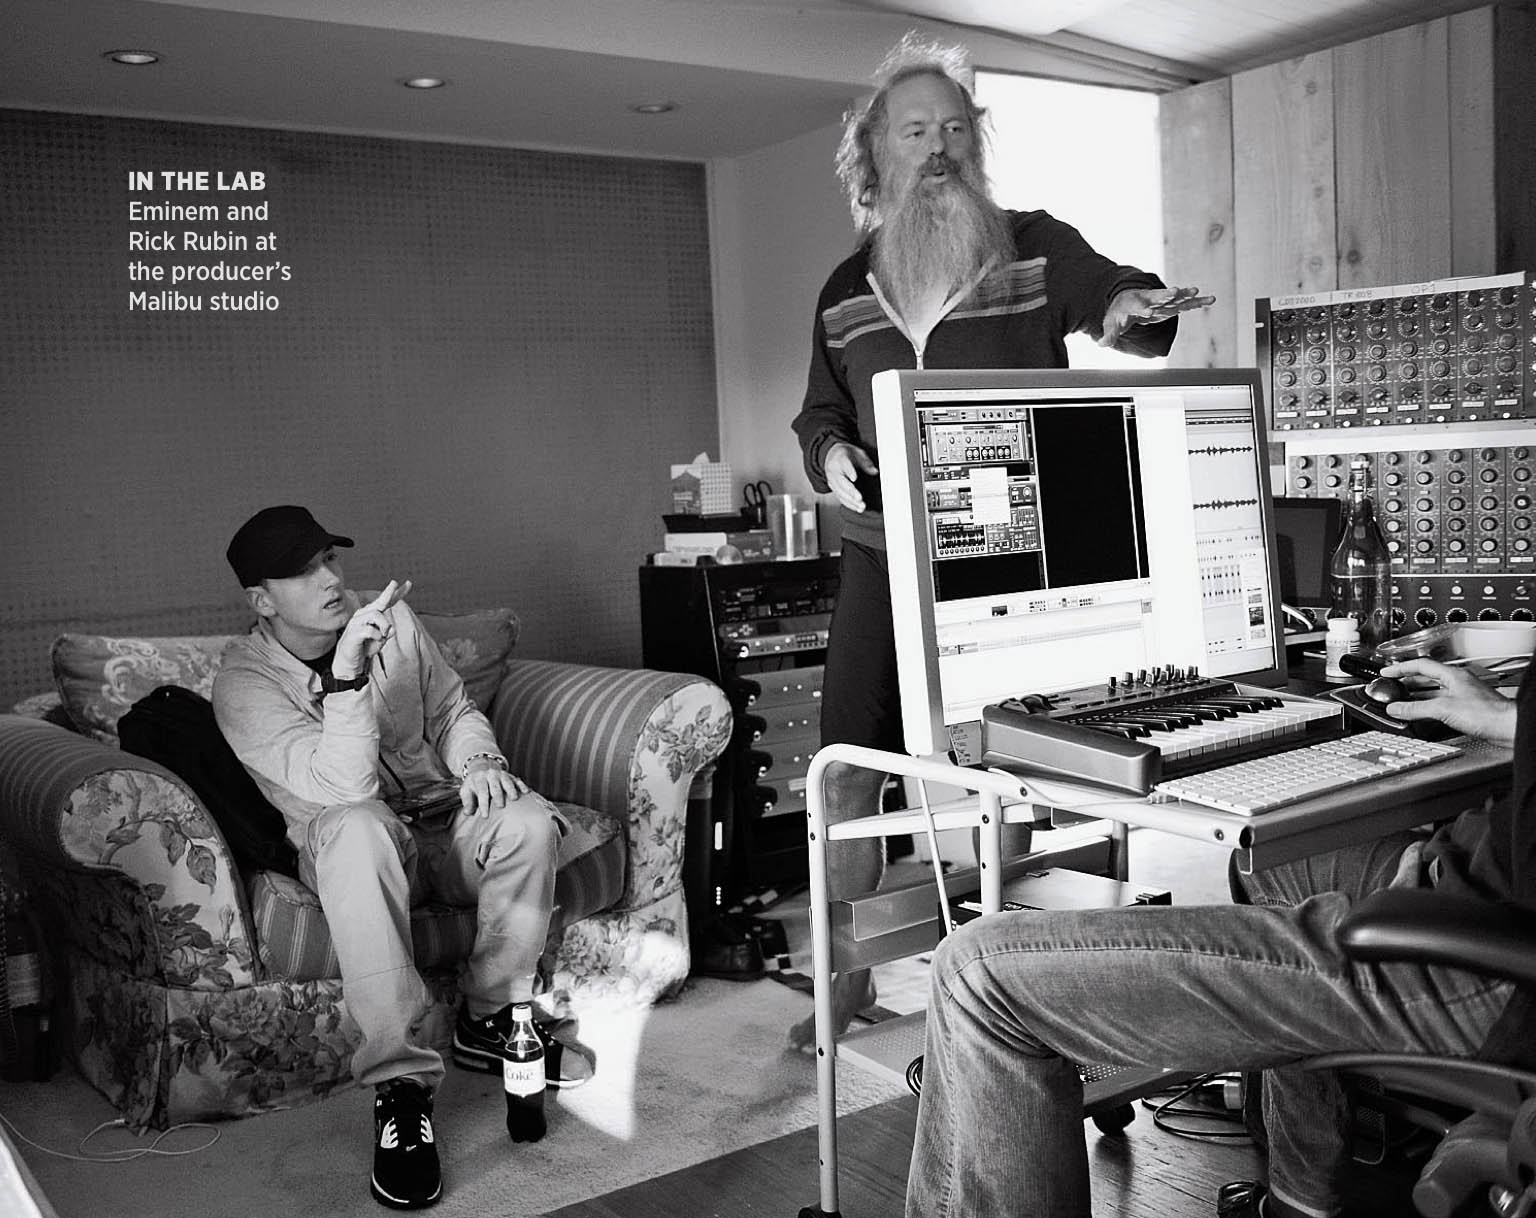 Legendary Music Producer Rick Rubin in the studio with Eminem